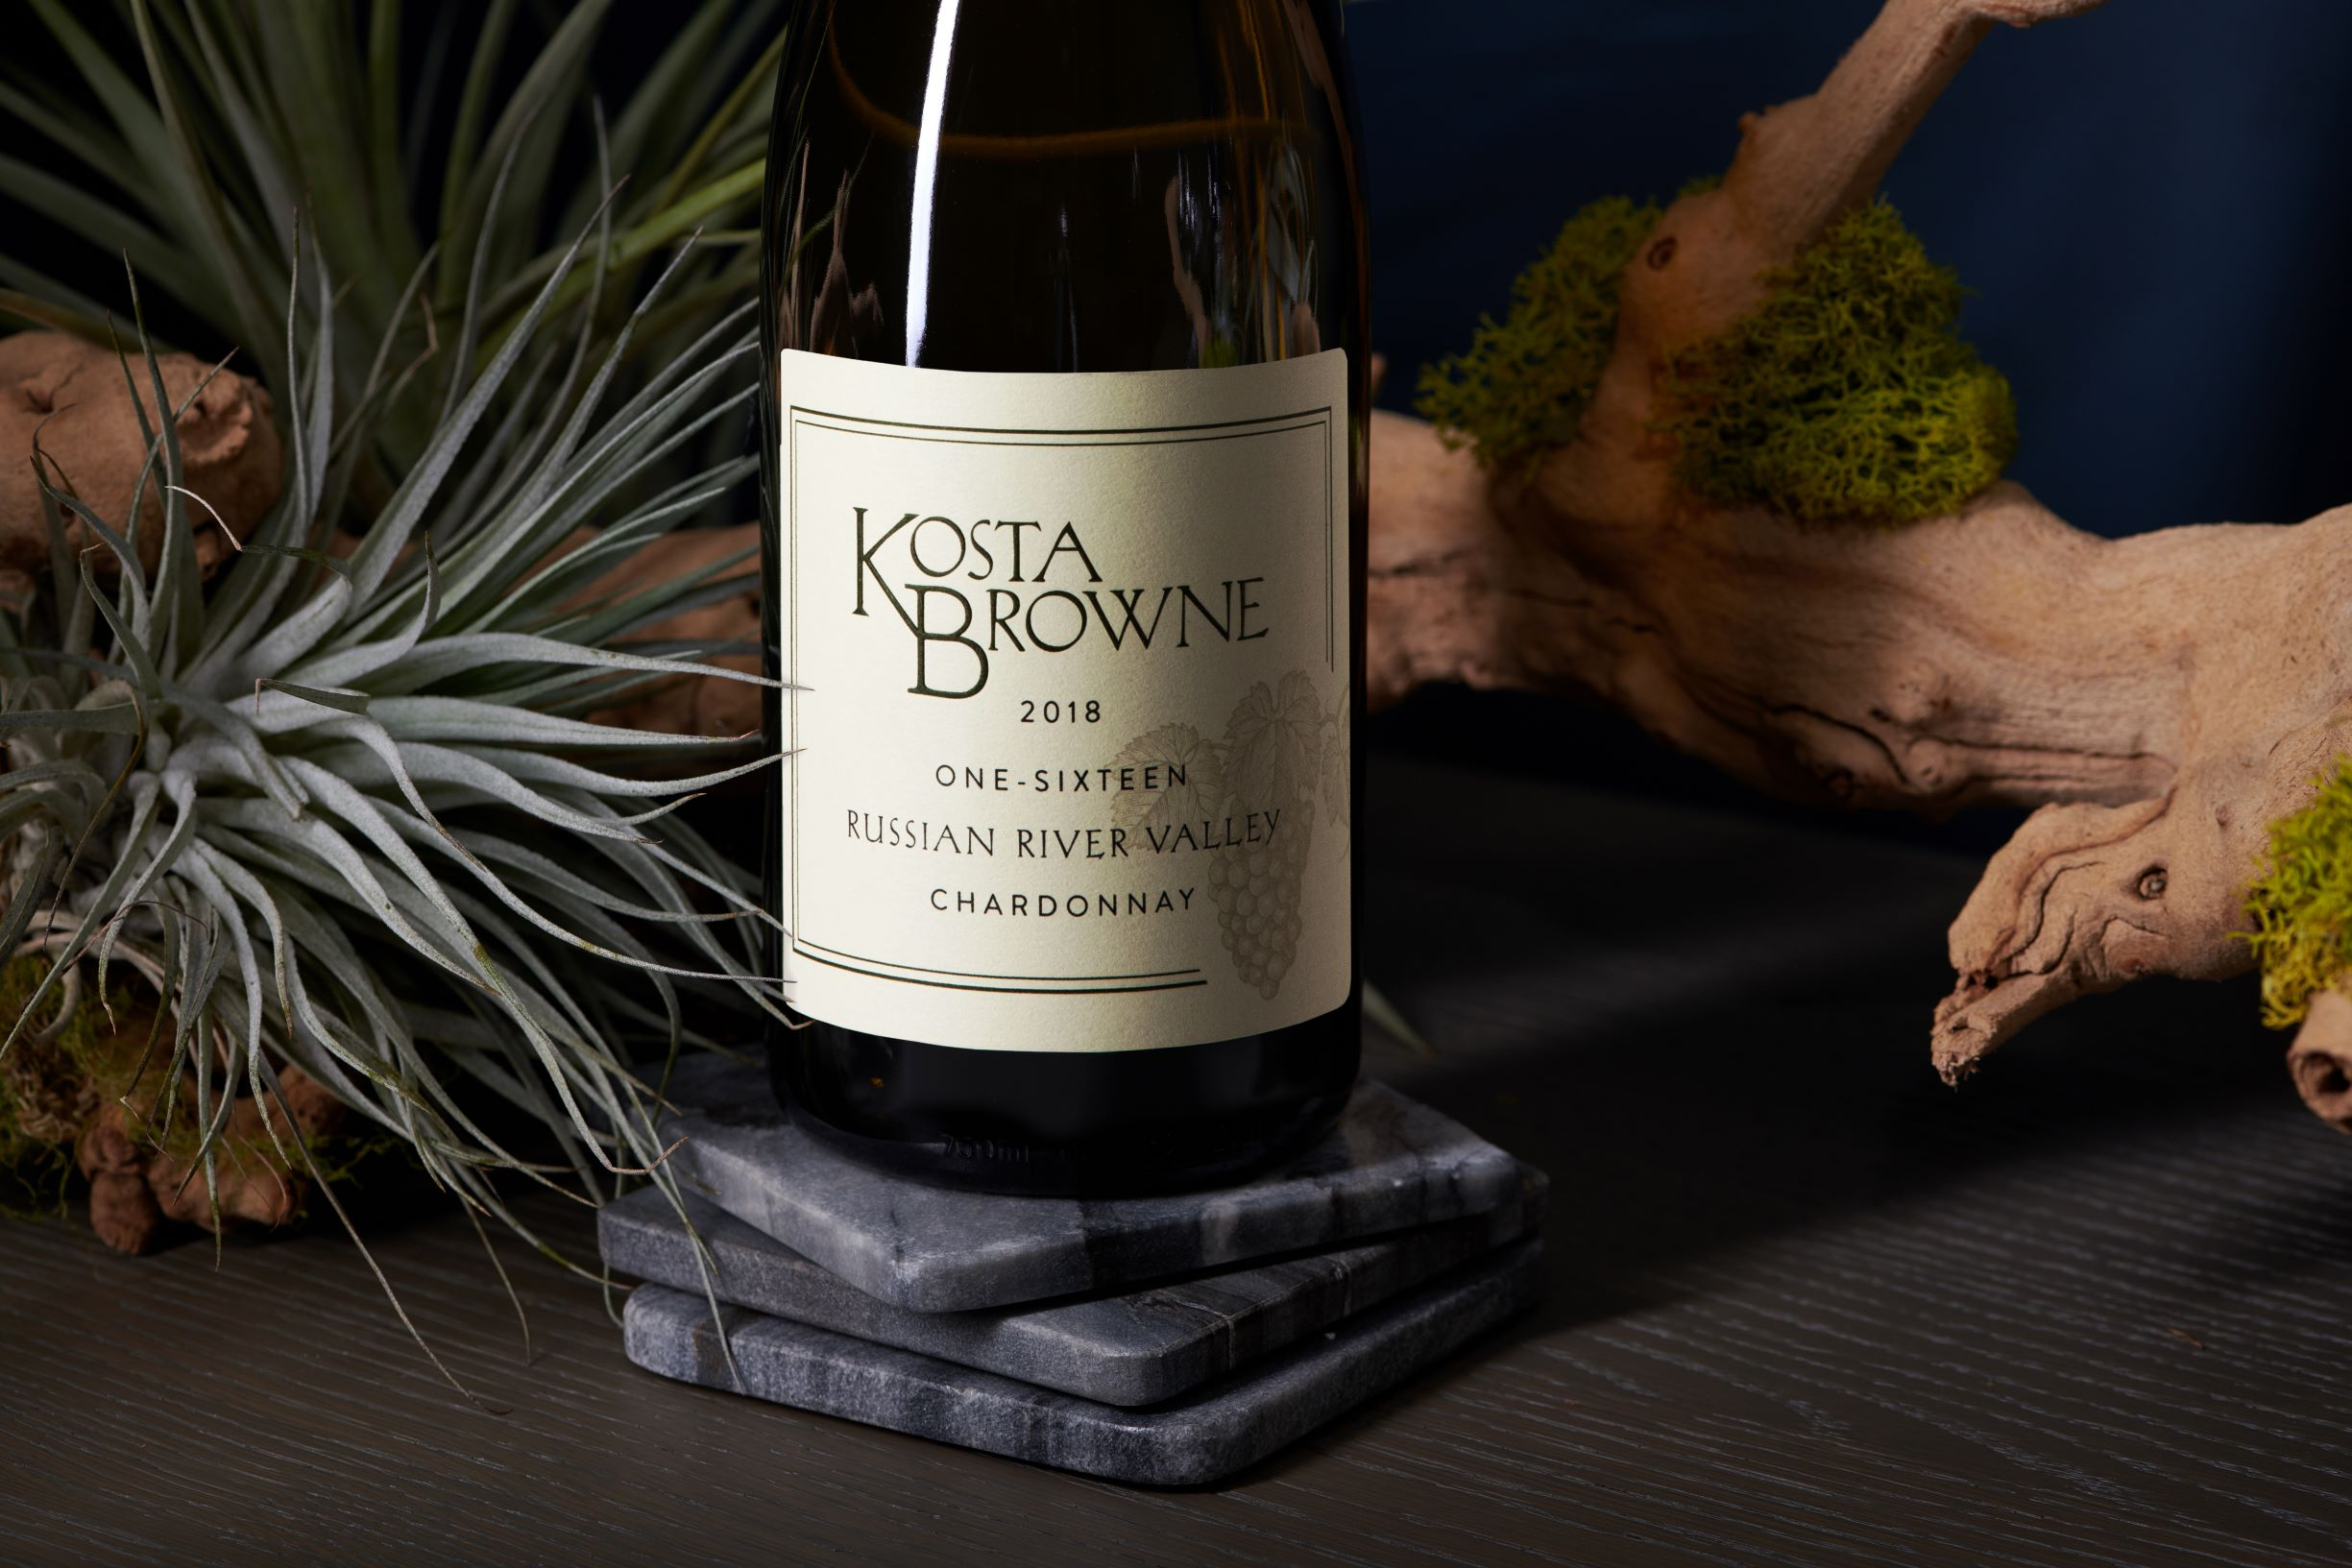 2018 One Sixteen Russian River Valley  - Kosta Browne Winery